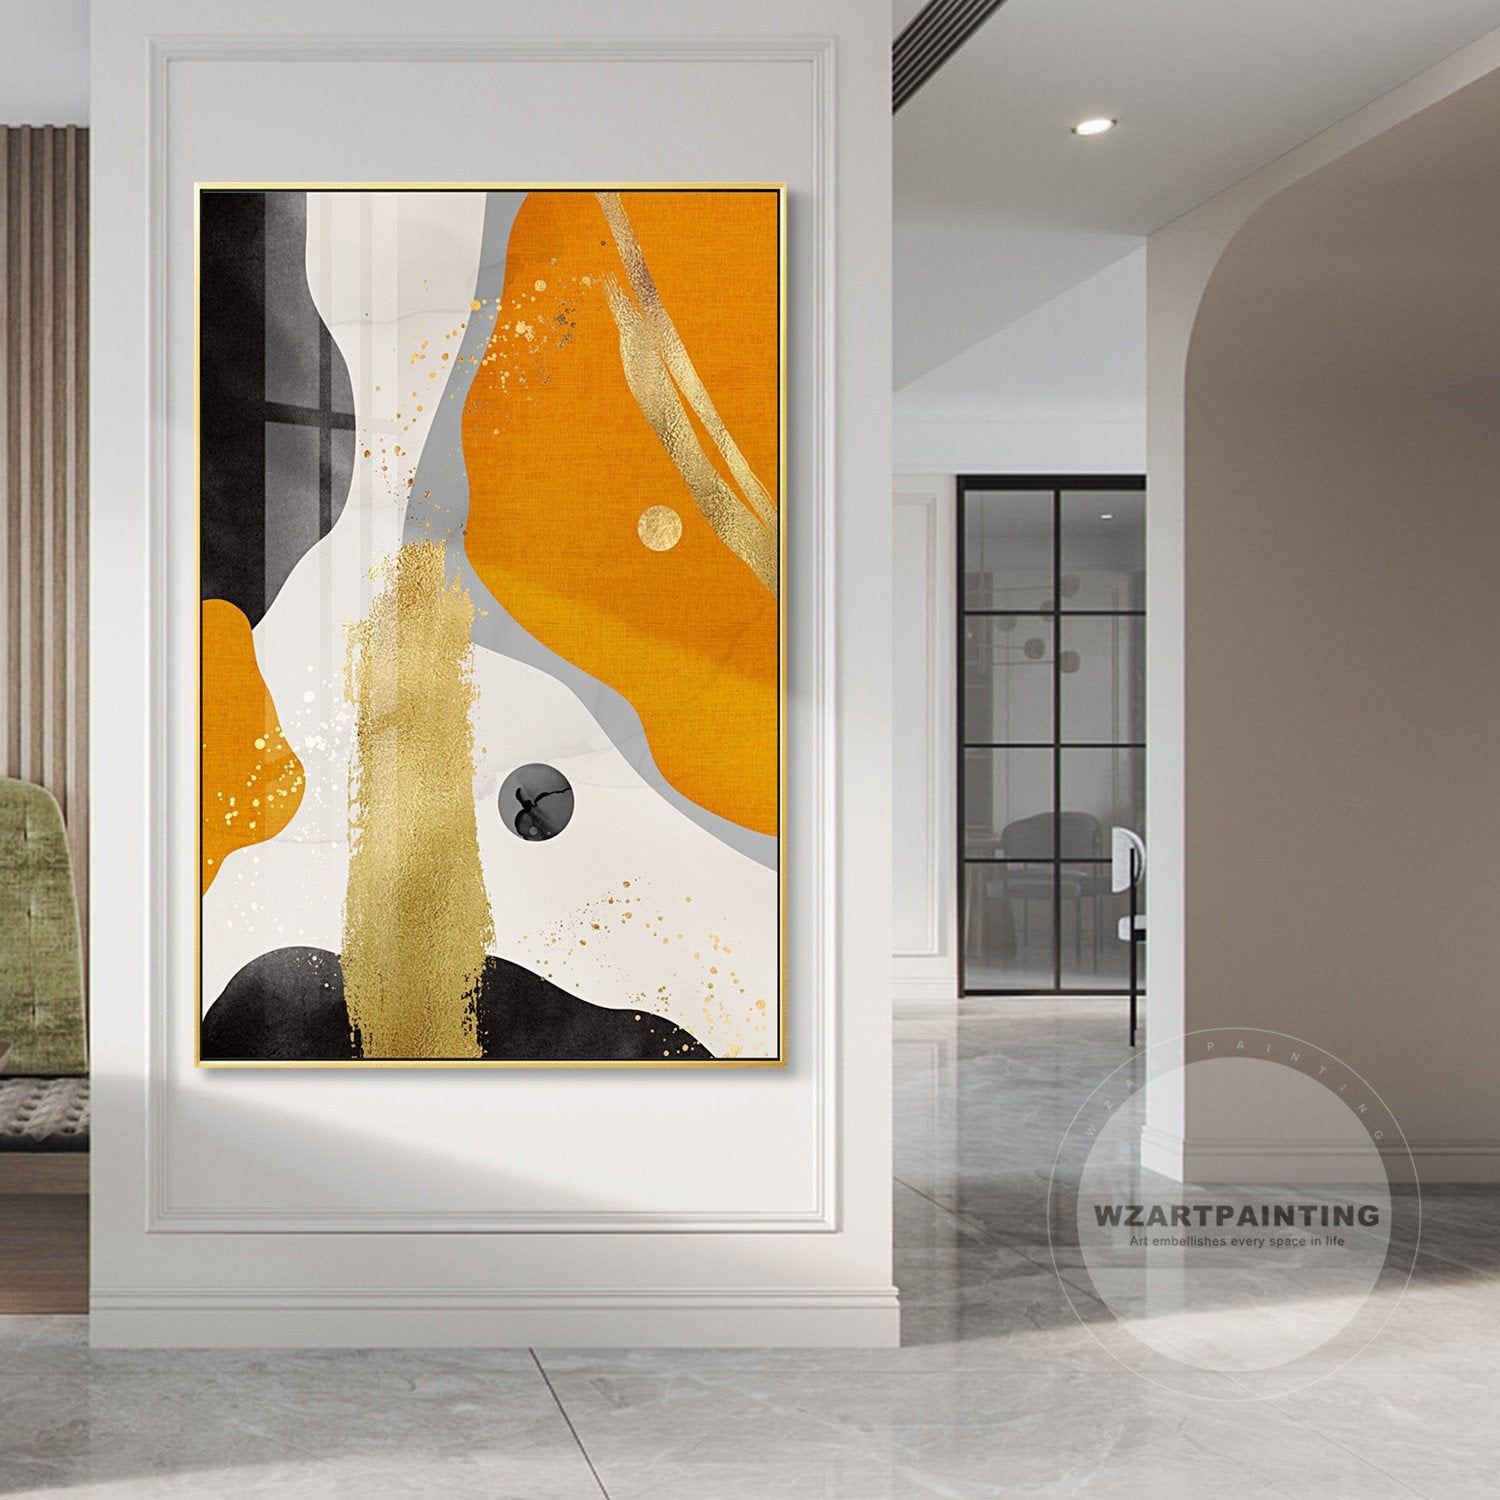 Abstract Gold Orange Print Painting Luxury Wall Art Pictures On Canvas Ready To Hang Print Art For Living Room Home D Gold Art Print Wall Art Pictures Abstract